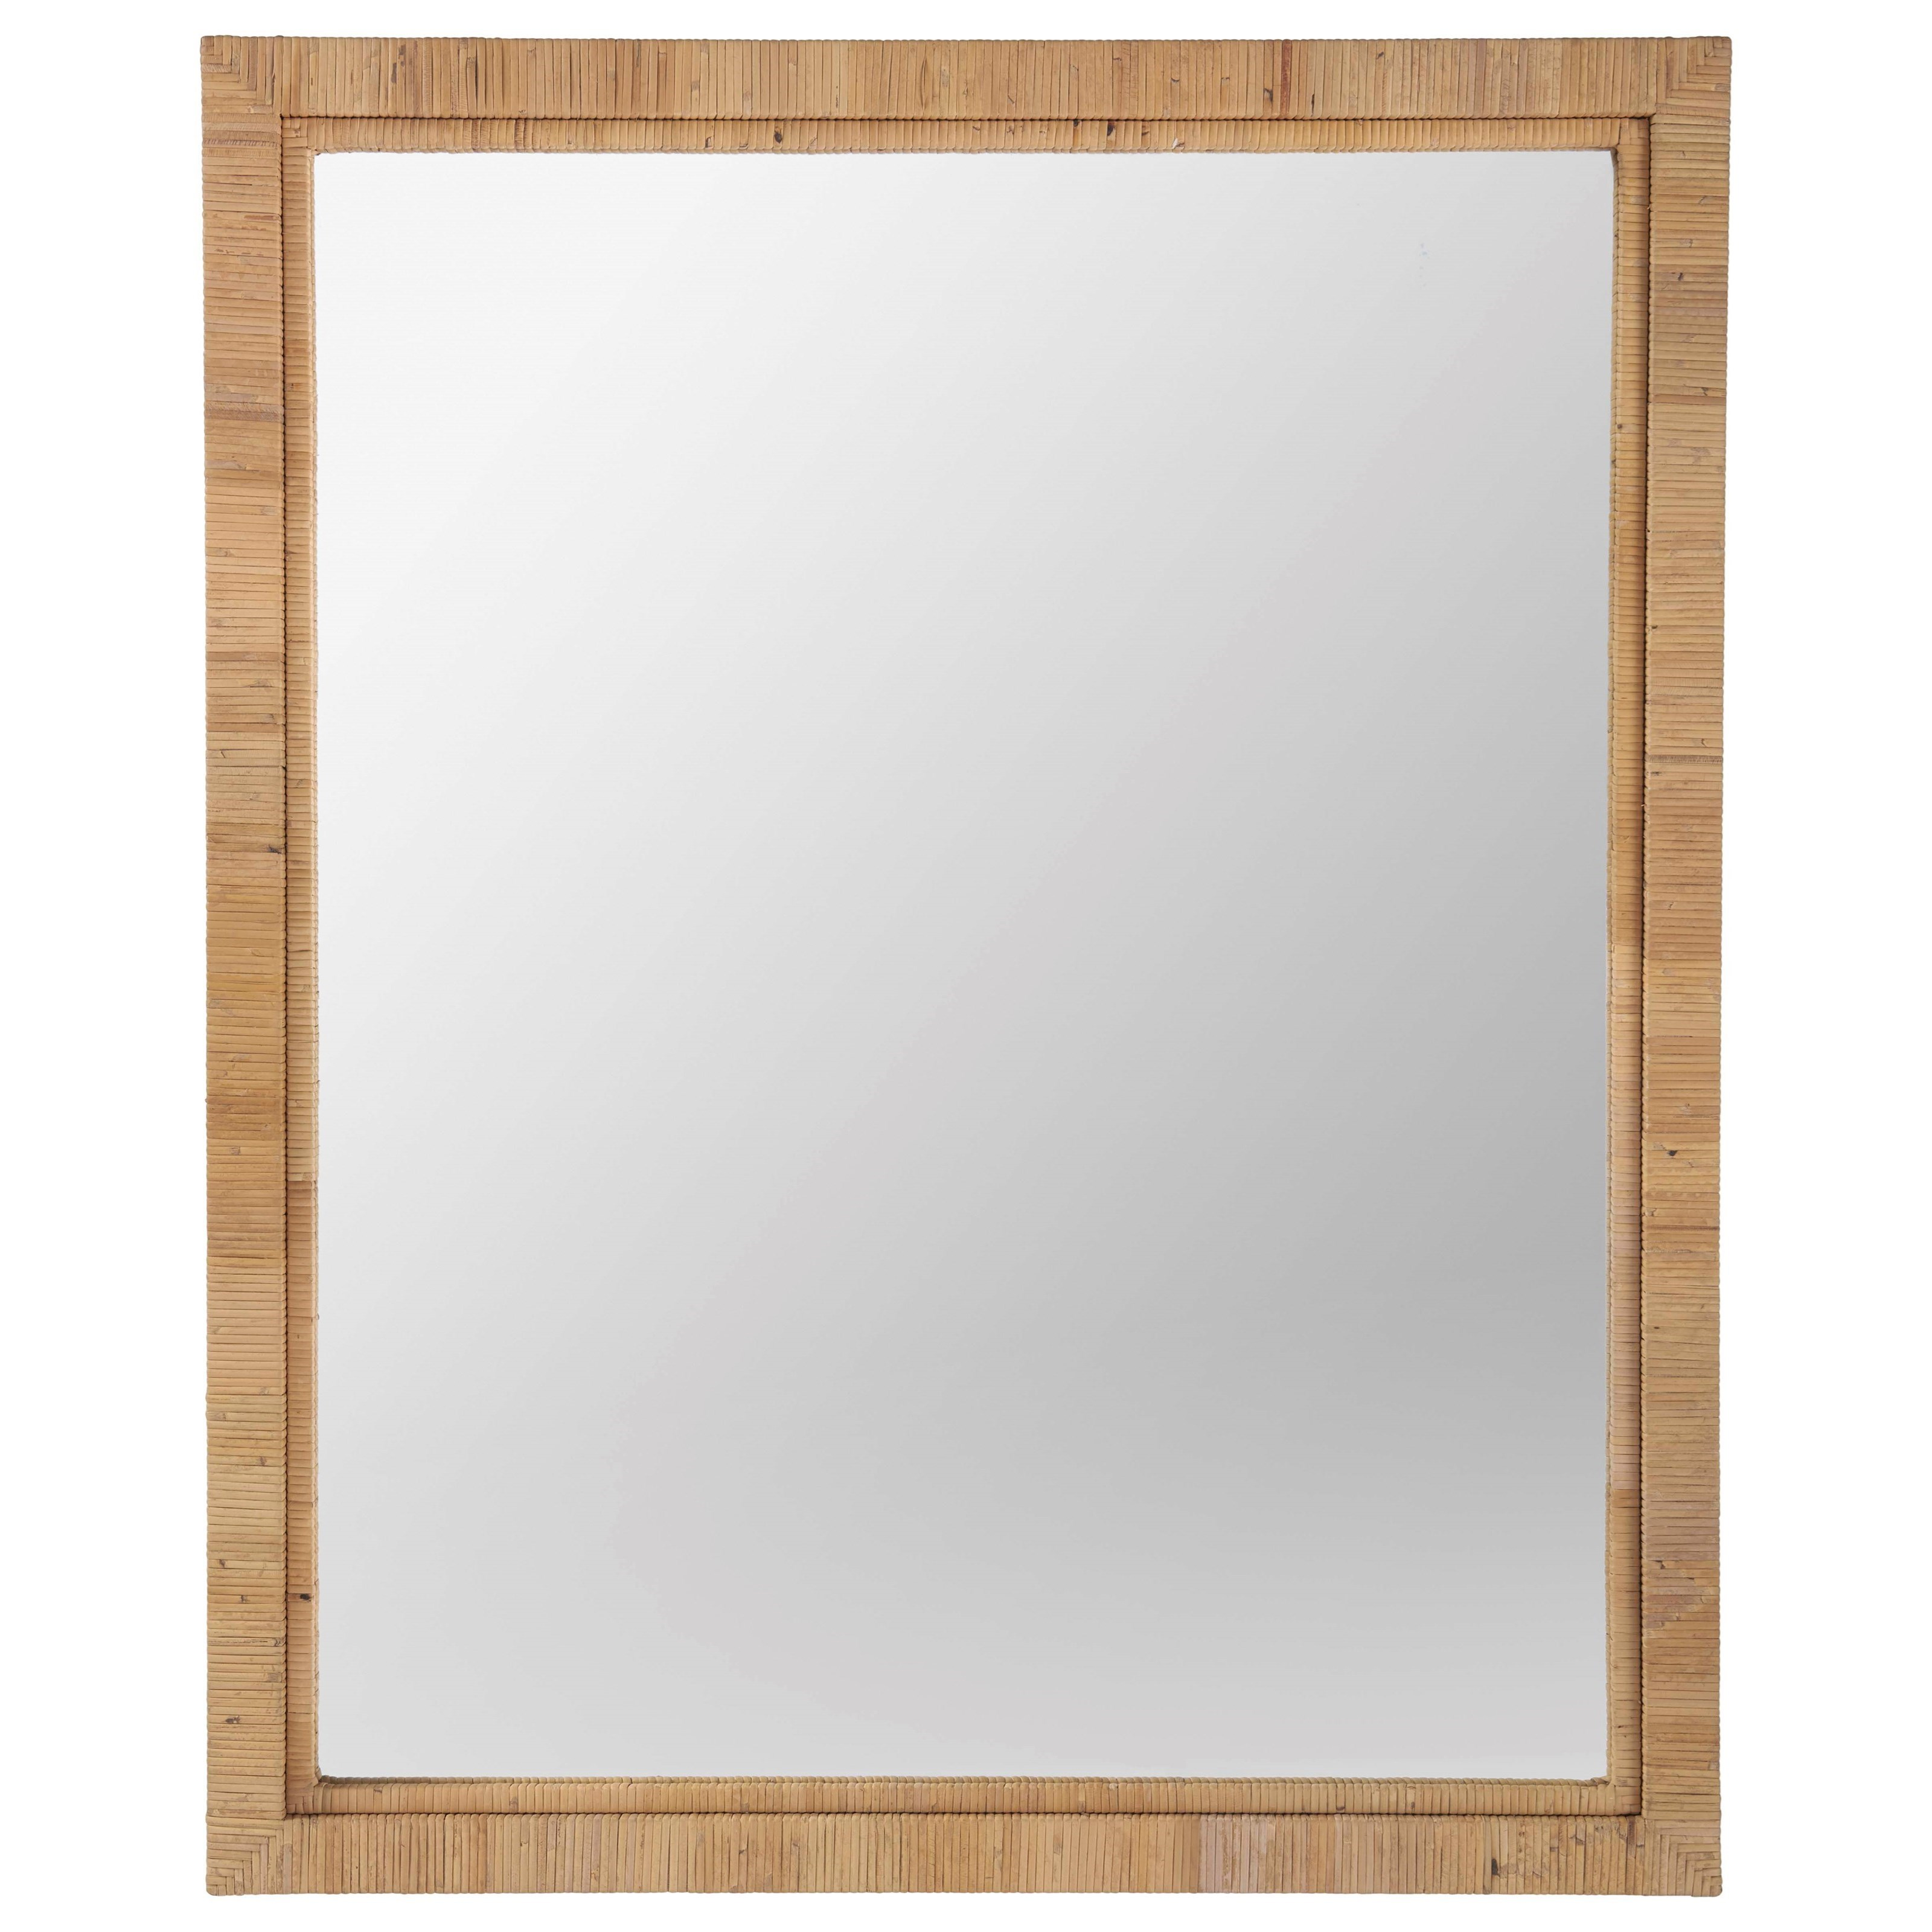 Coastal Living Home - Escape Mirror by Universal at Baer's Furniture